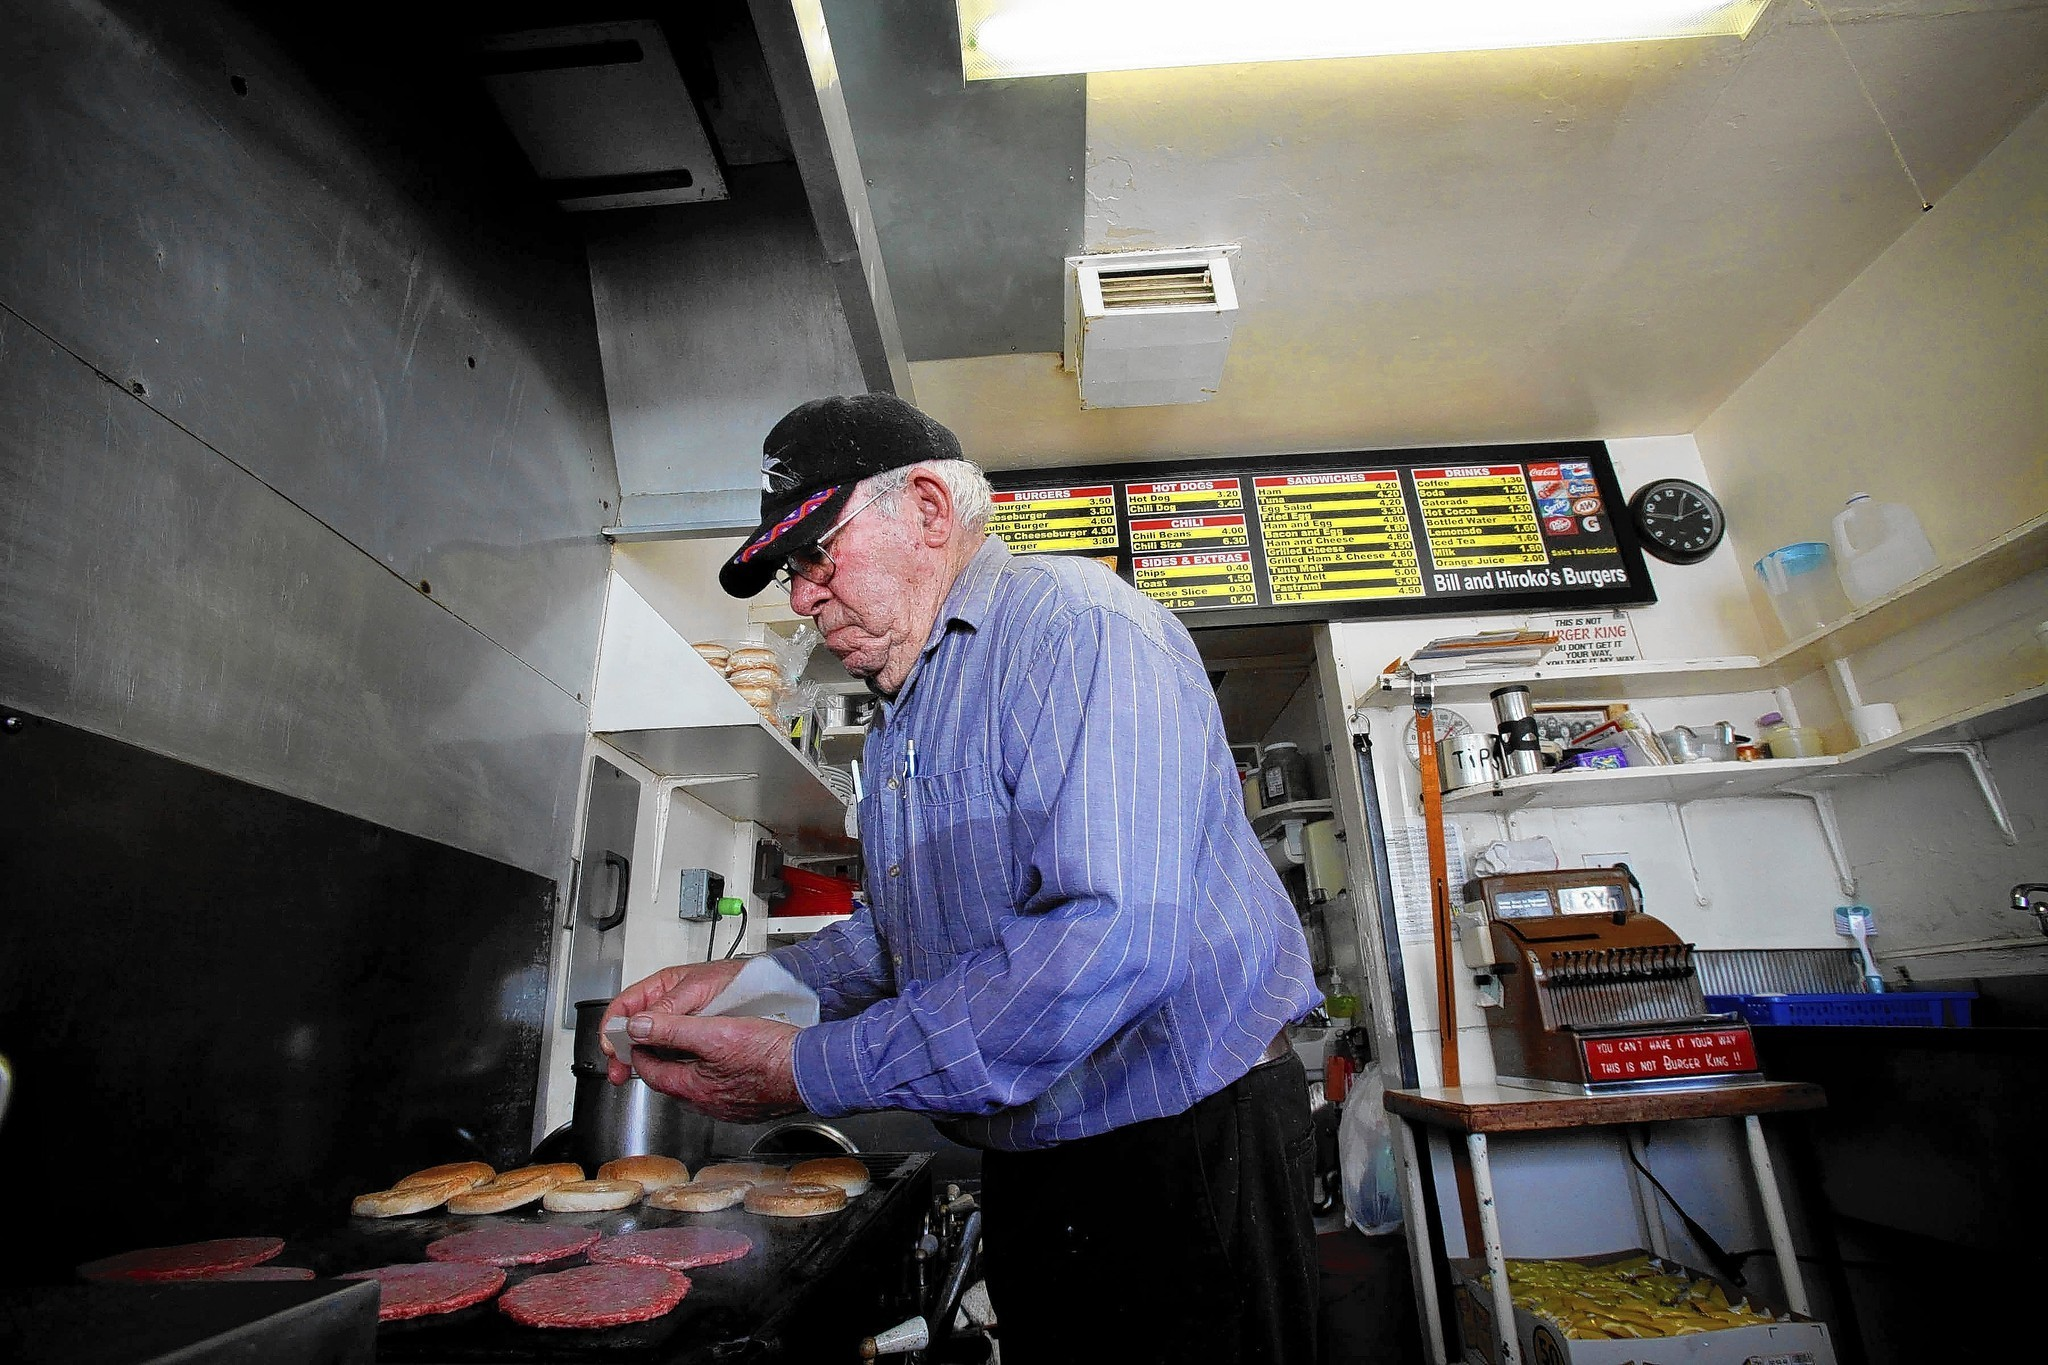 Bill Elwell, 87, plops patties onto the old flattop grill at his hamburger stand, Bill & Hiroko's Burgers, on Oxnard Street where Van Nuys meets Sherman Oaks. He crankily says he doesn't want any more customers, but they just keep showing up anyway.